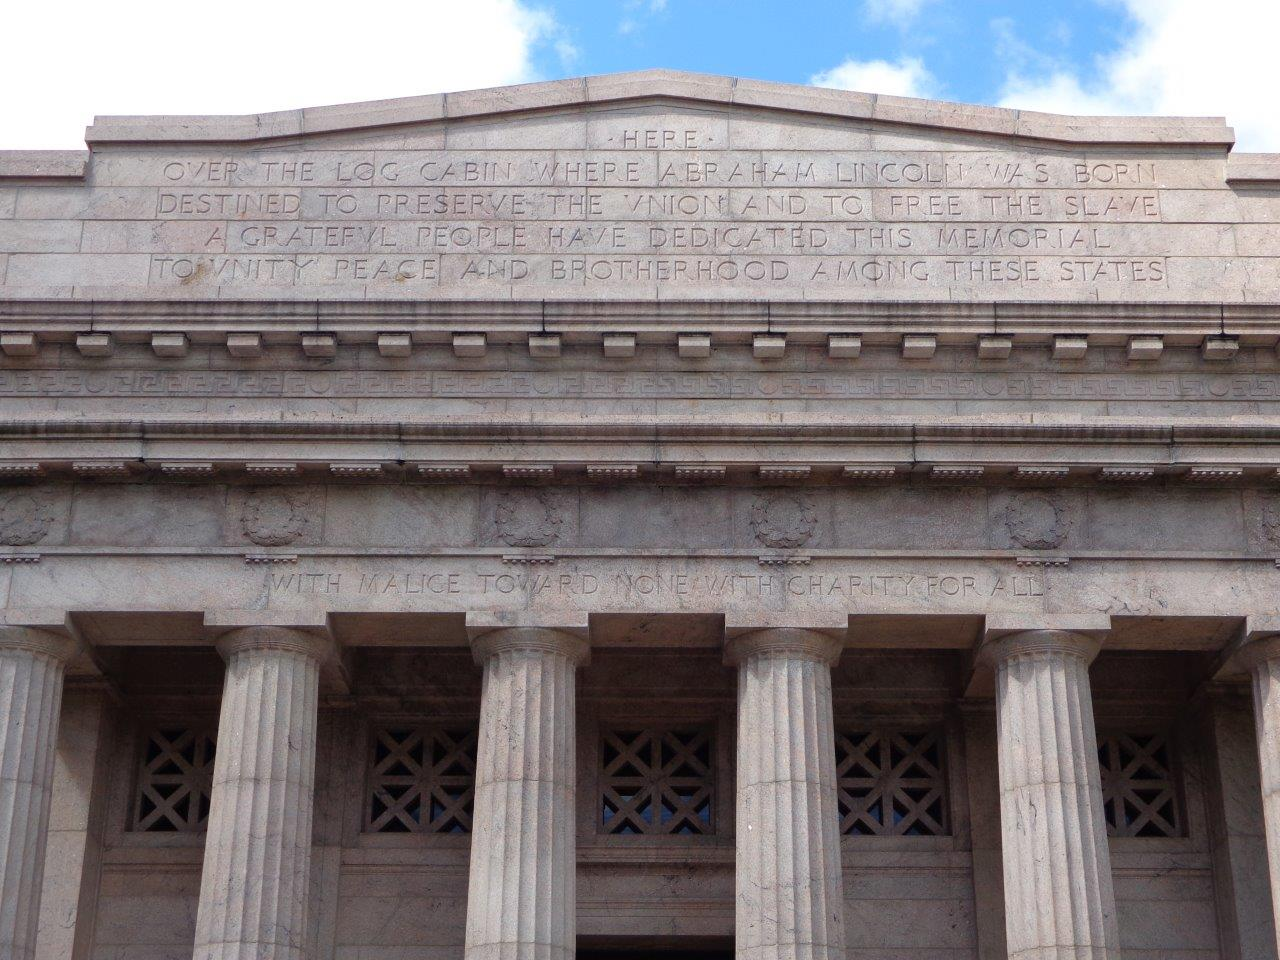 Abraham Lincoln birthplace memorial building